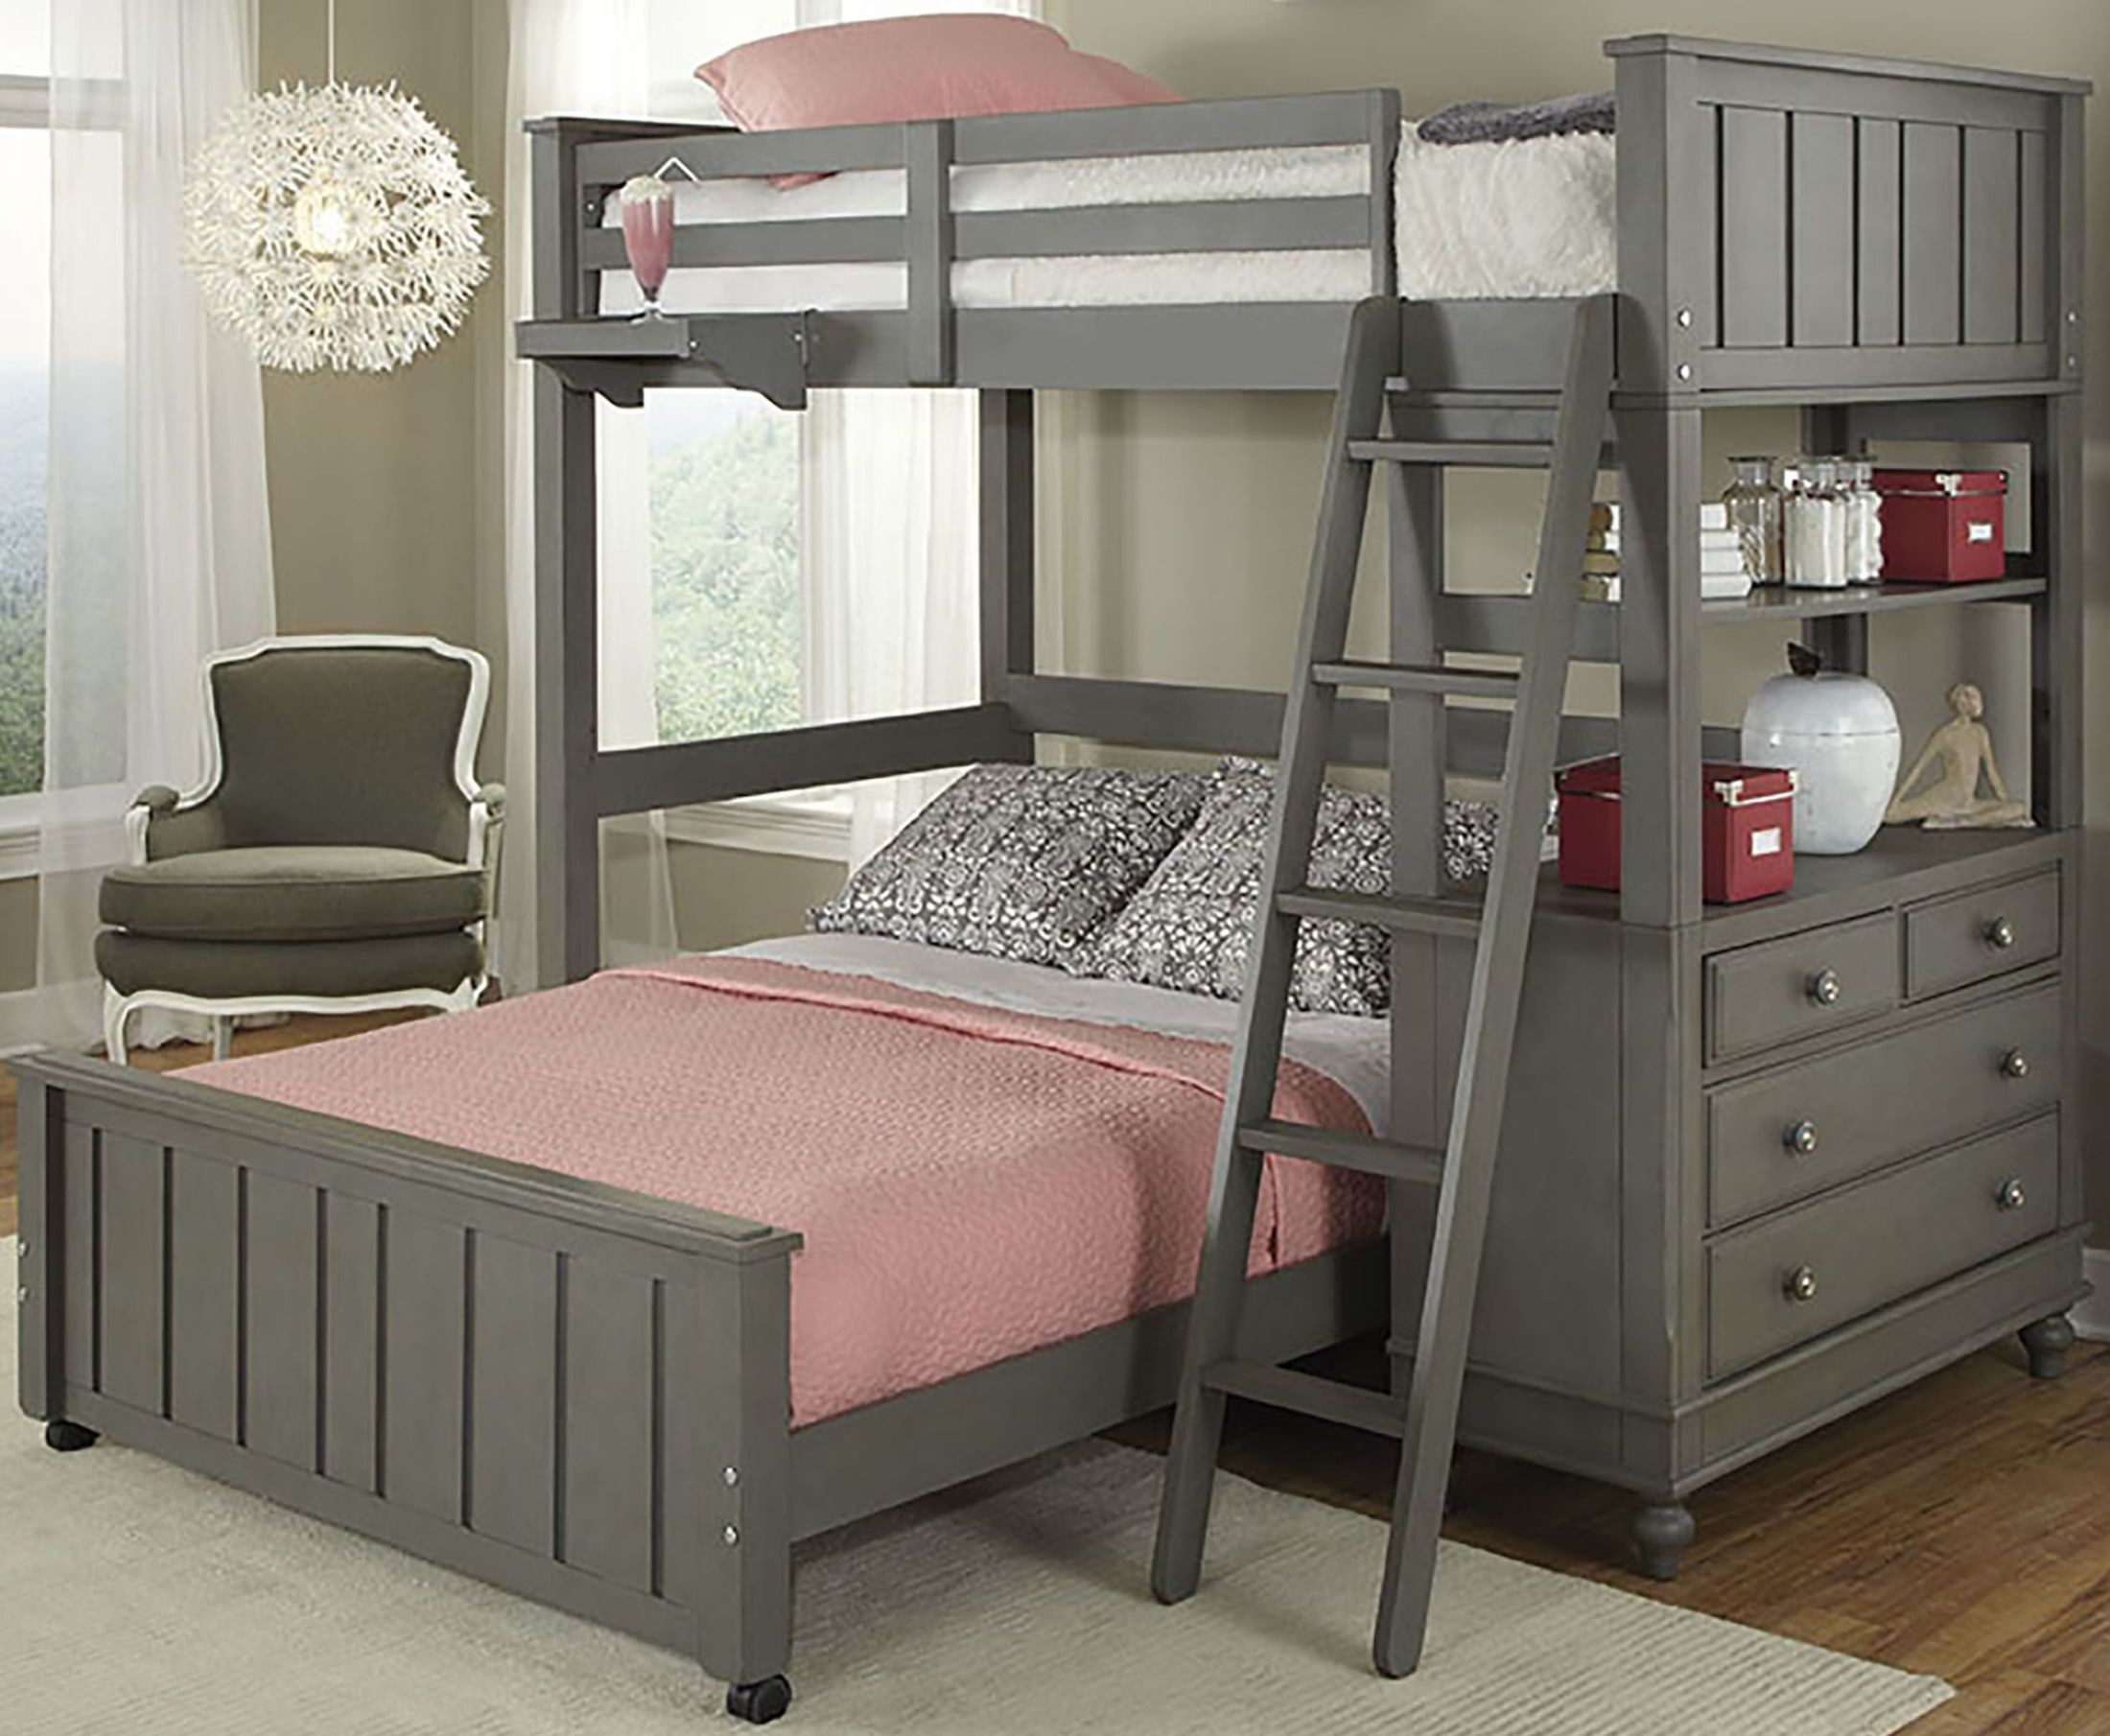 Lake House Stone Twin Loft Bed with Full Lower Bed from NE Kids ...